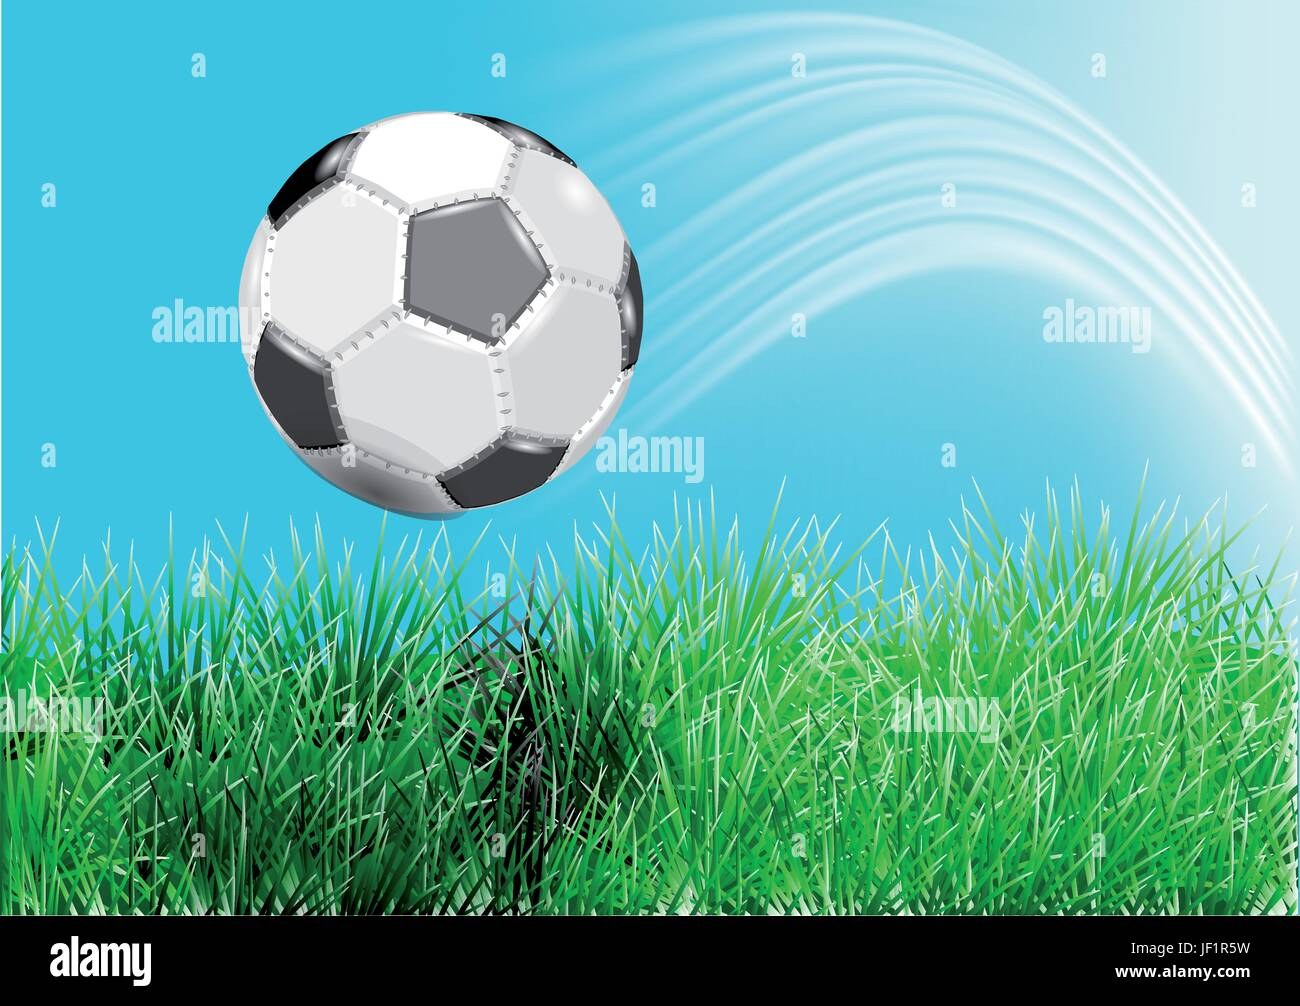 sport, sports, closeup, ball, summer, summerly, foreground, meadow, soccer, - Stock Vector